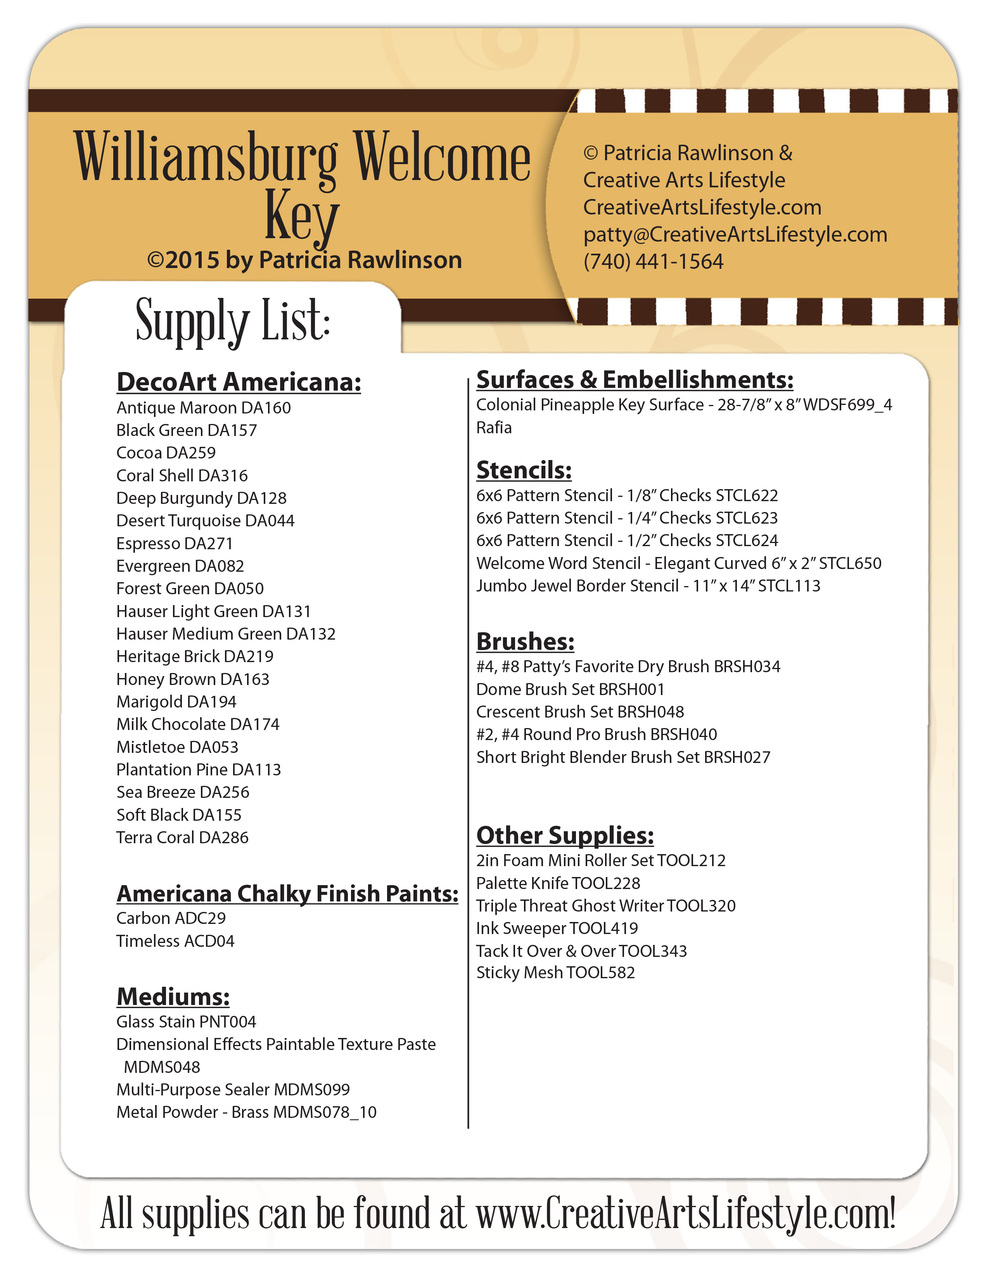 Williamsburg Welcome Key DVD - Patricia Rawlinson